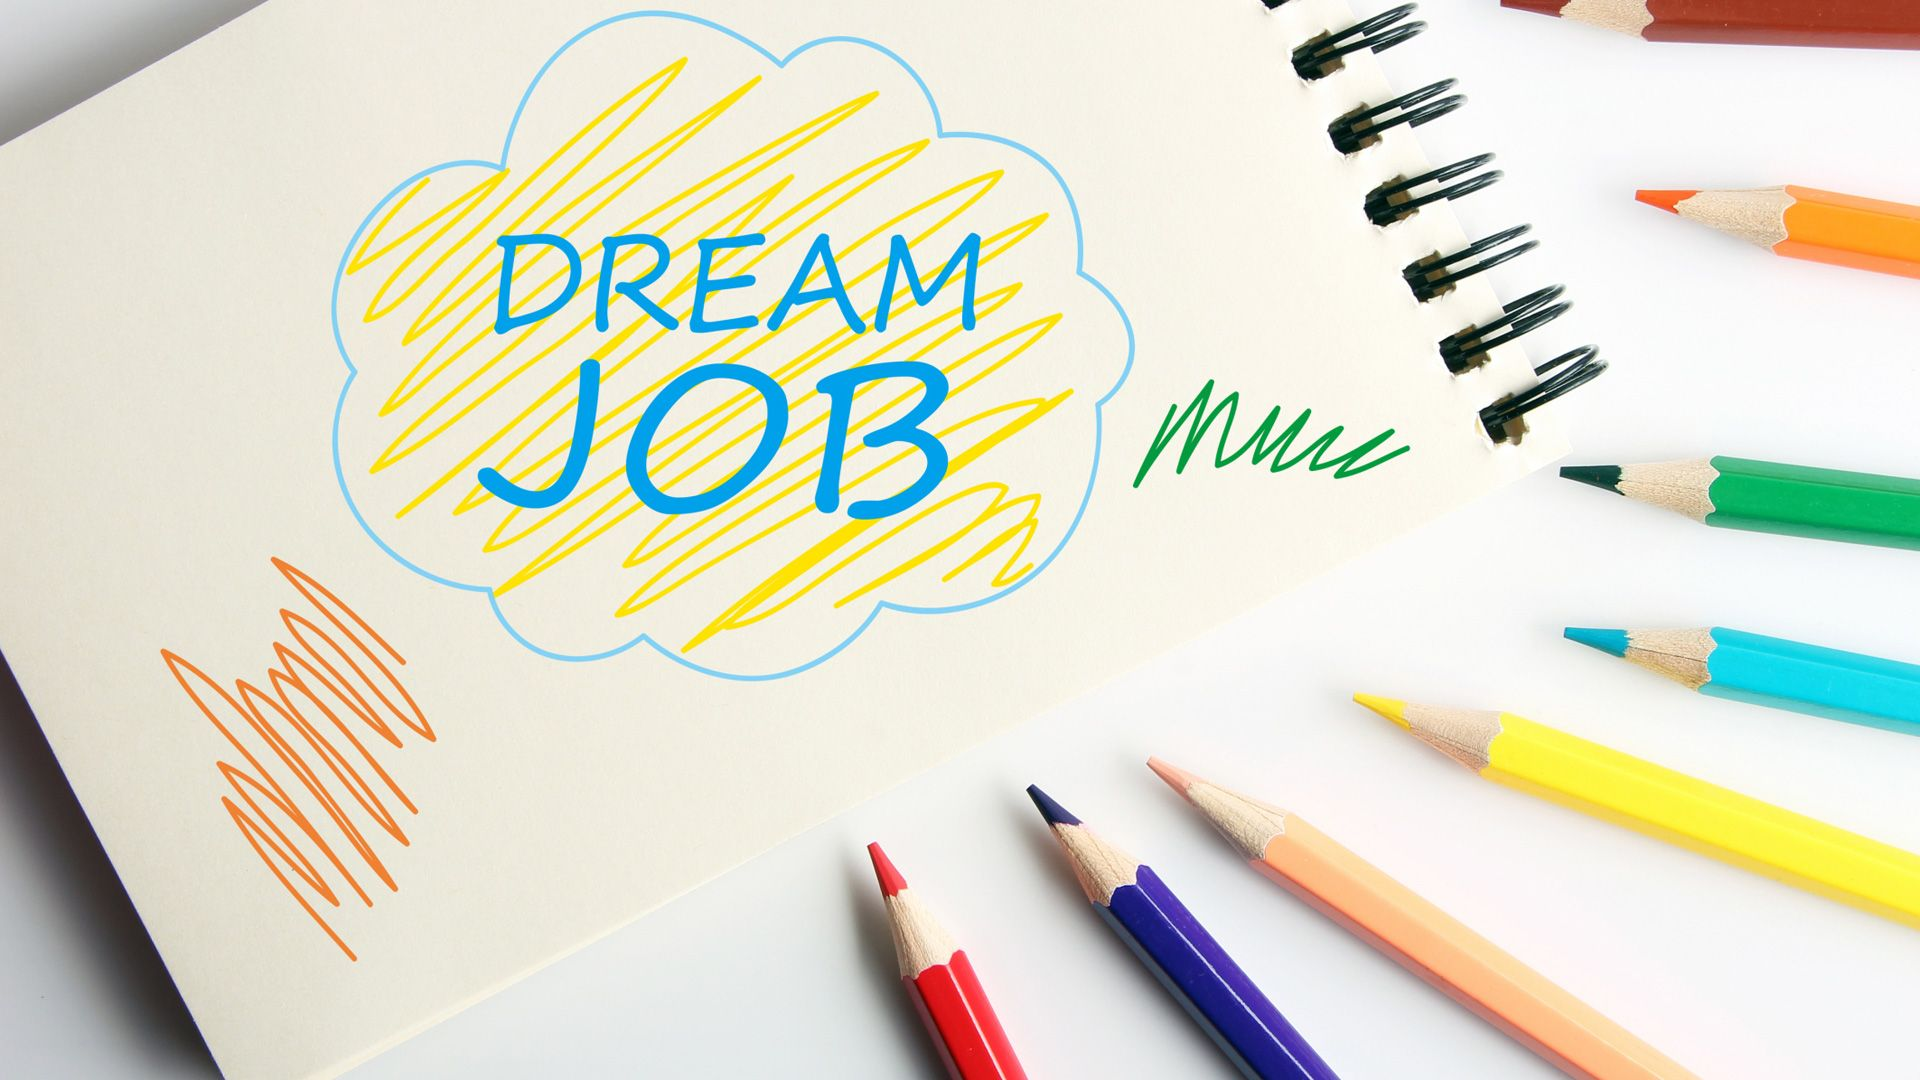 job consultancy in Chennai Job opening, Staffing company